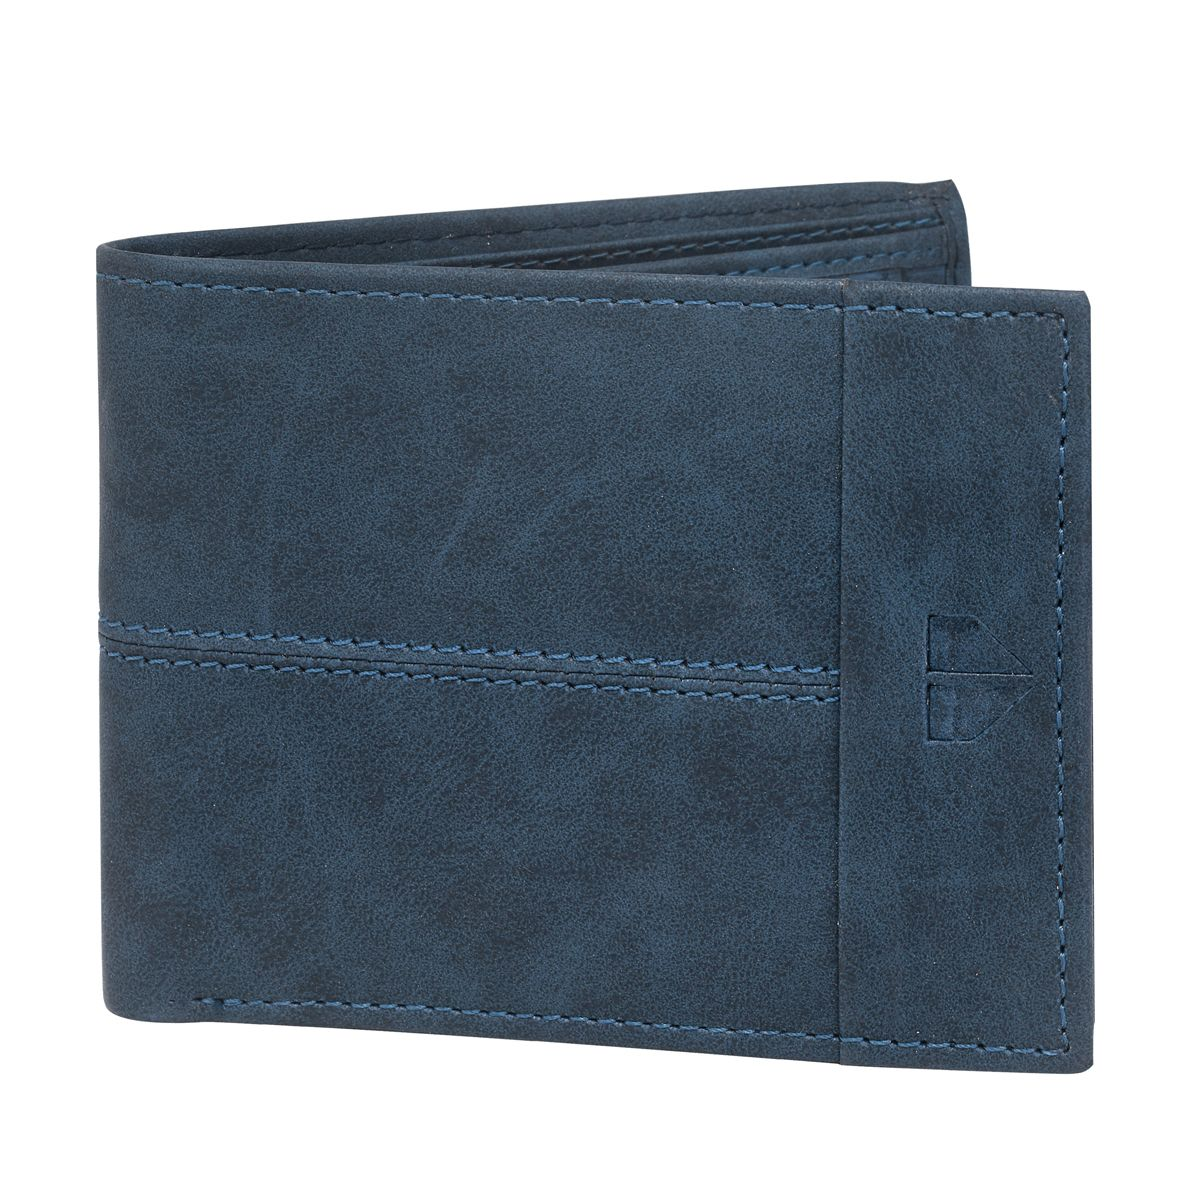 Walrus Invicta Blue Color Men Genuine Leather Wallet (WW-IVT-03)